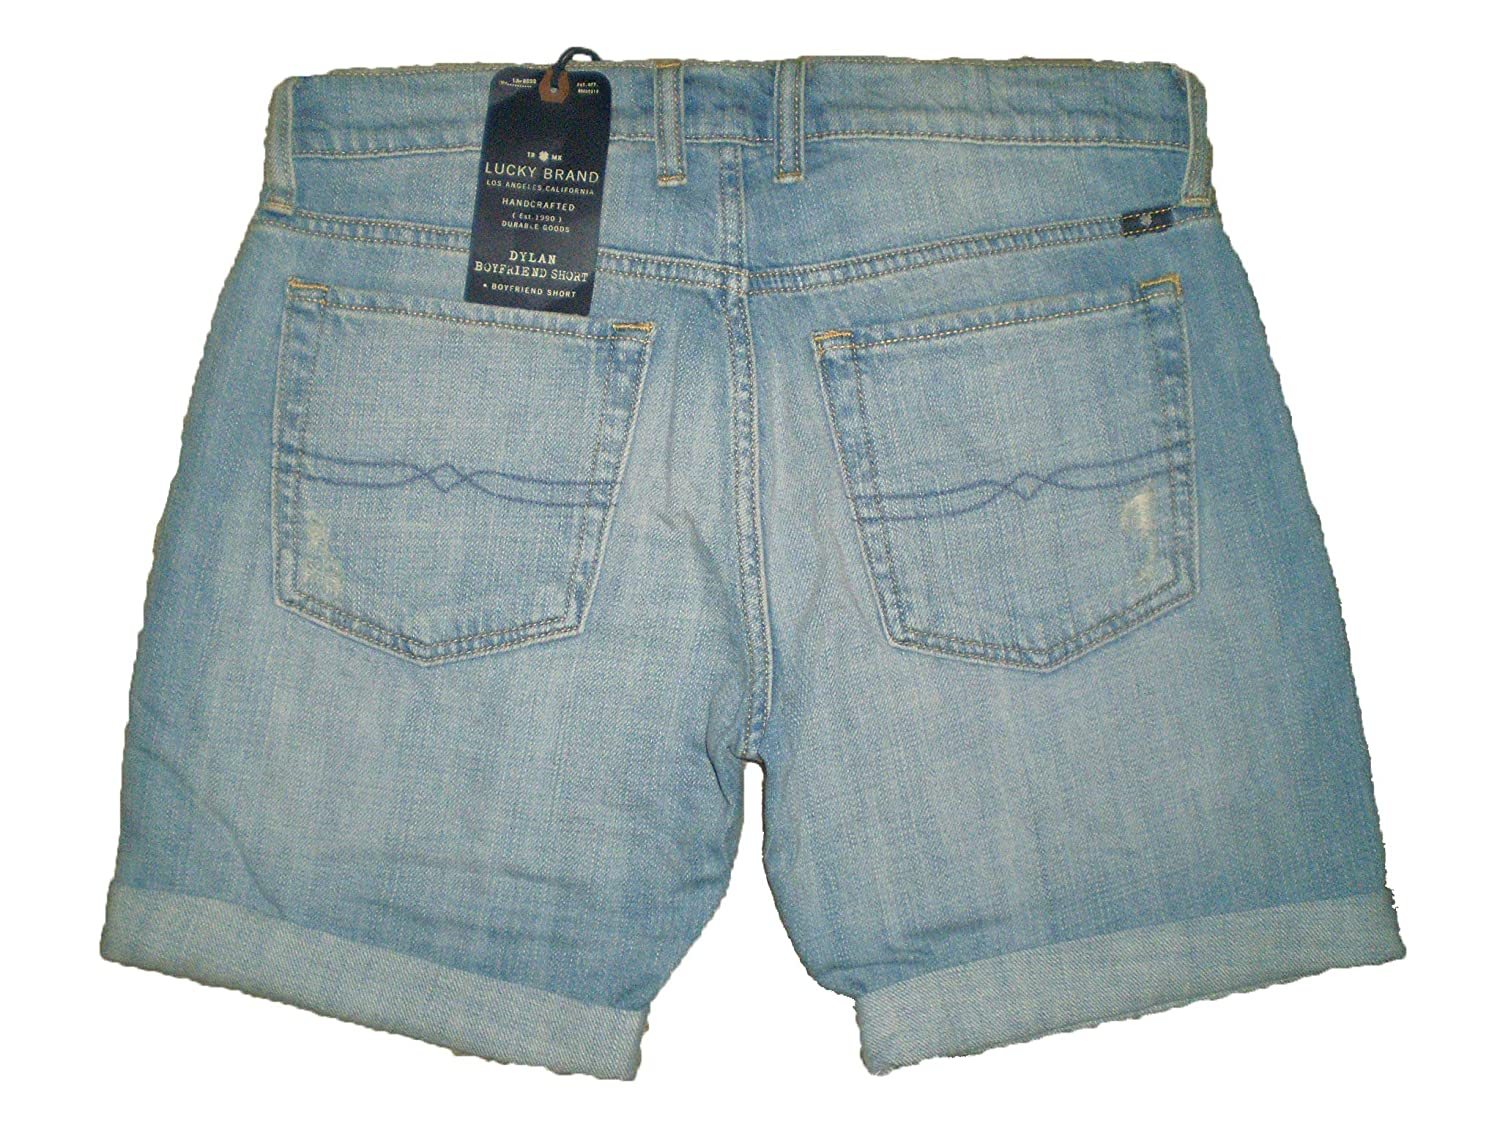 011544619bb Lucky Brand Dylan Boyfriend Cut Off Denim Distressed Jean Shorts Womens New  $79 (00) at Amazon Women's Clothing store: